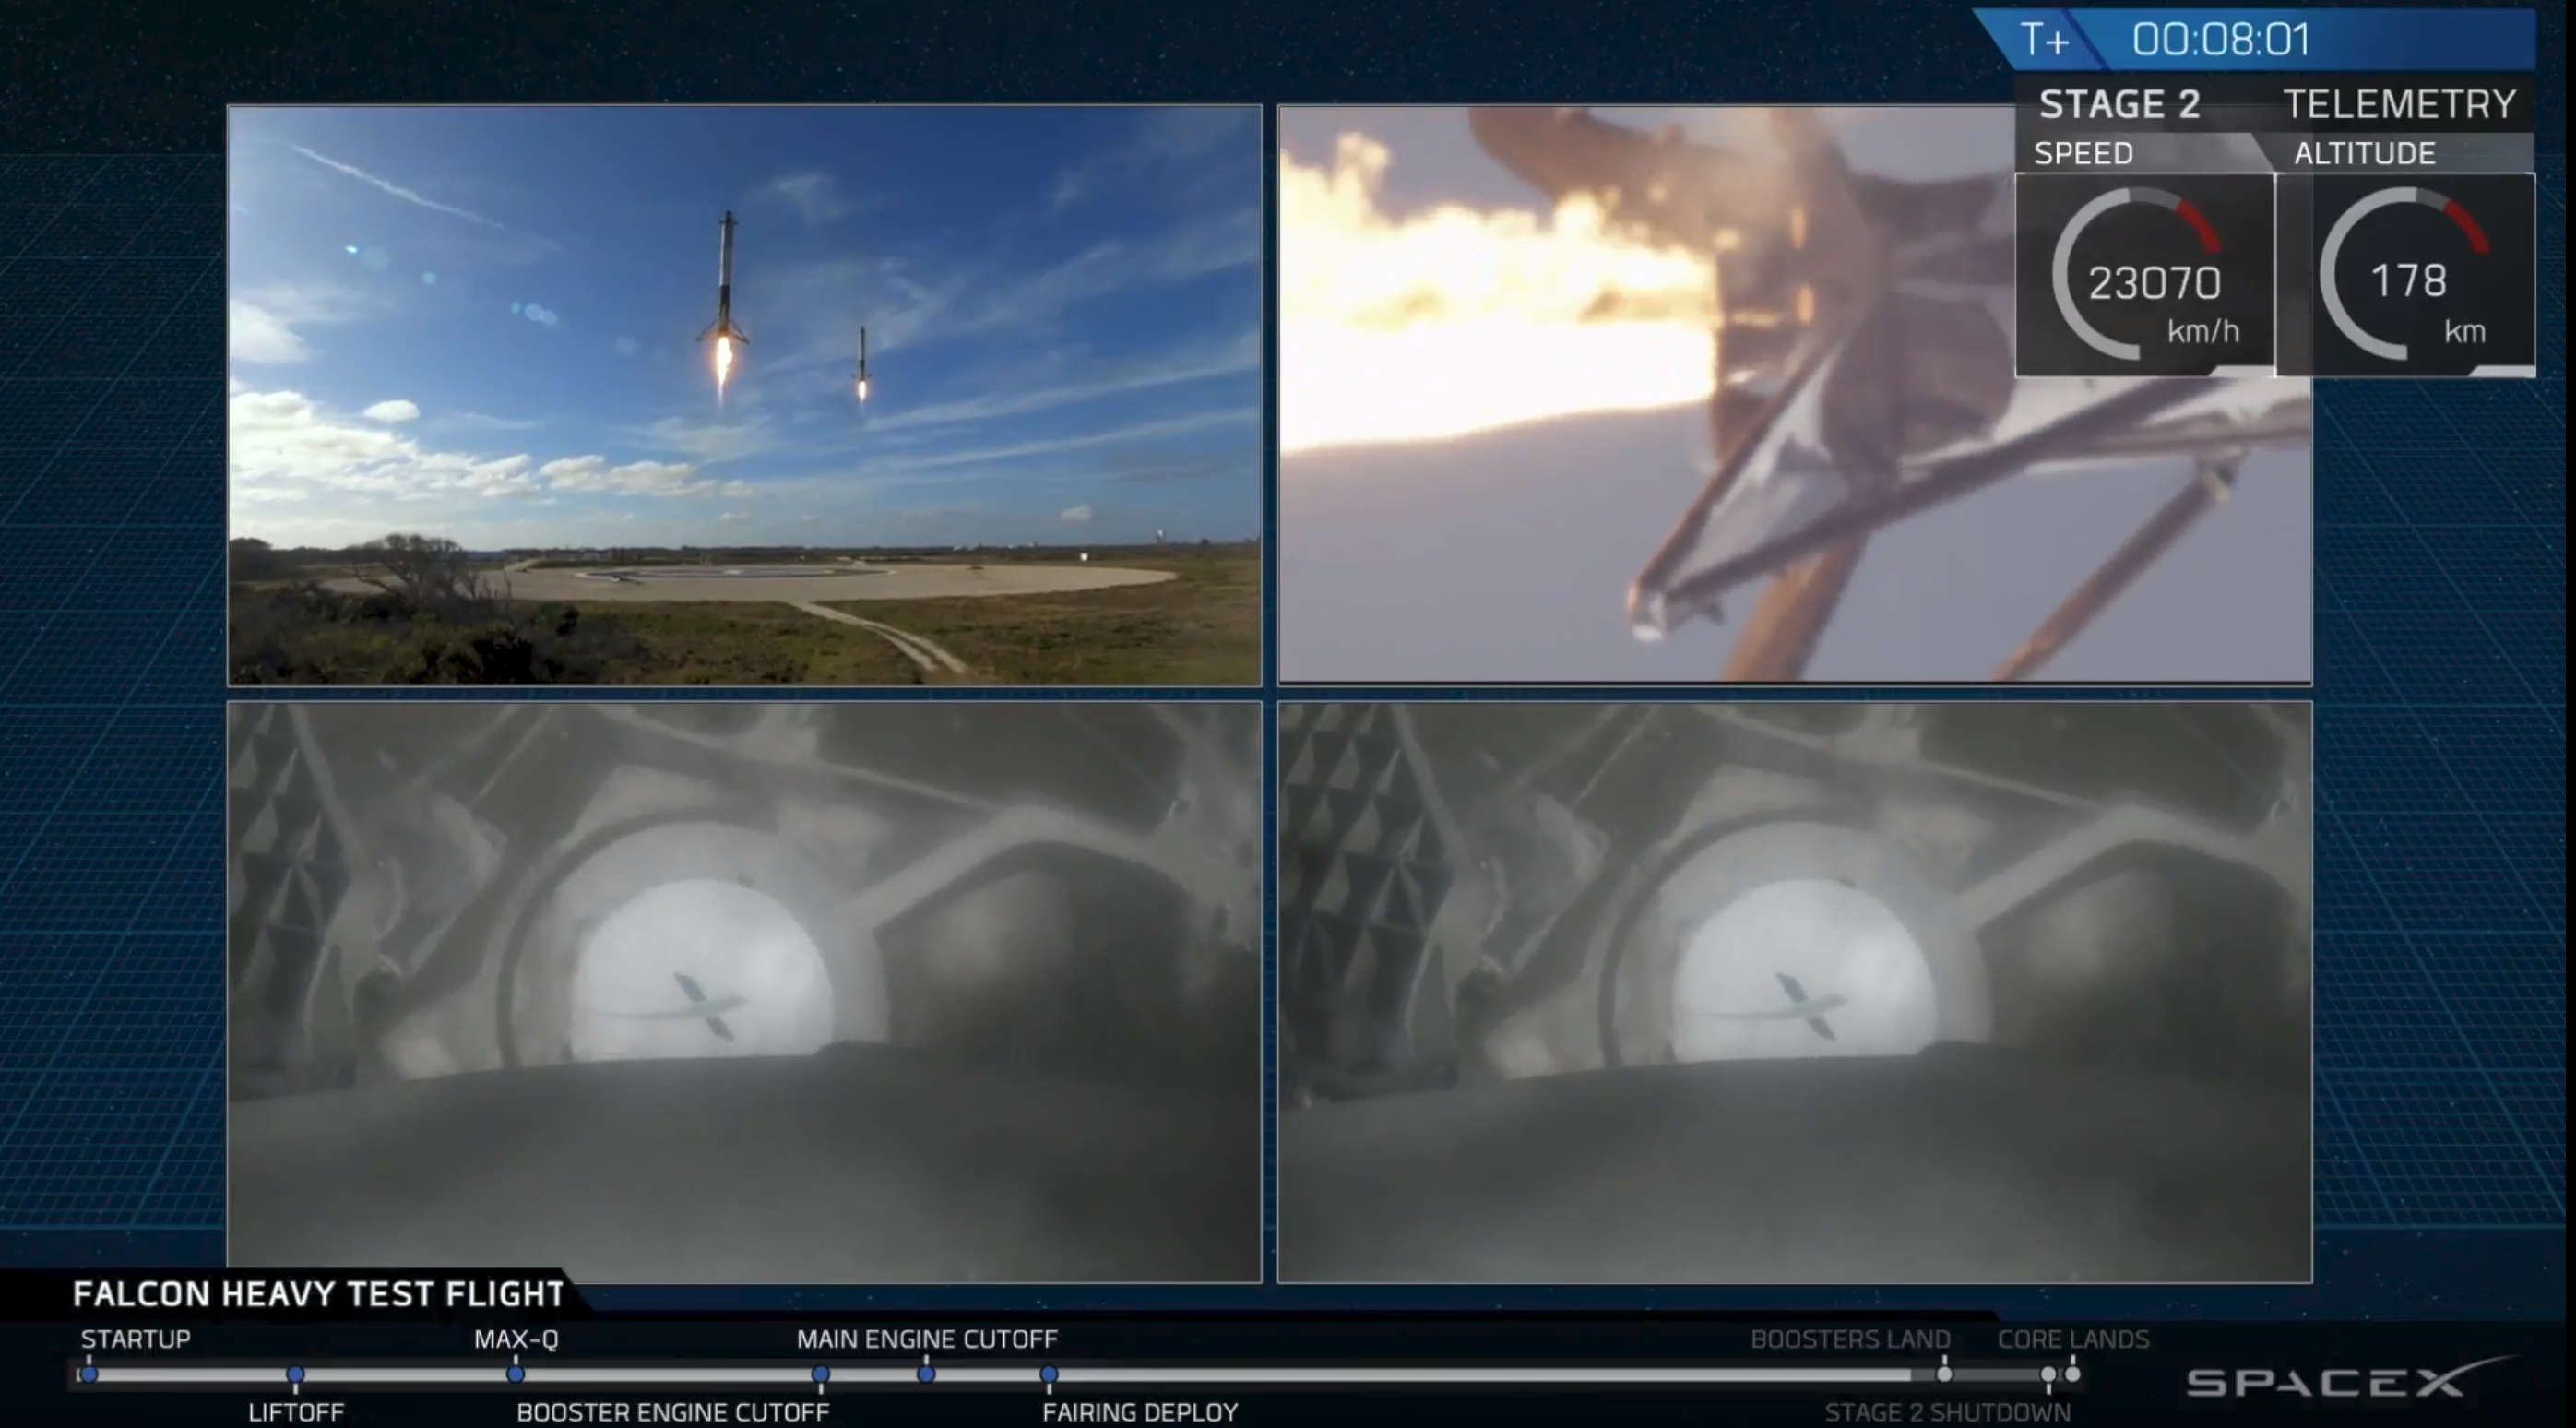 SpaceX Falcon Heavy side booster landing.